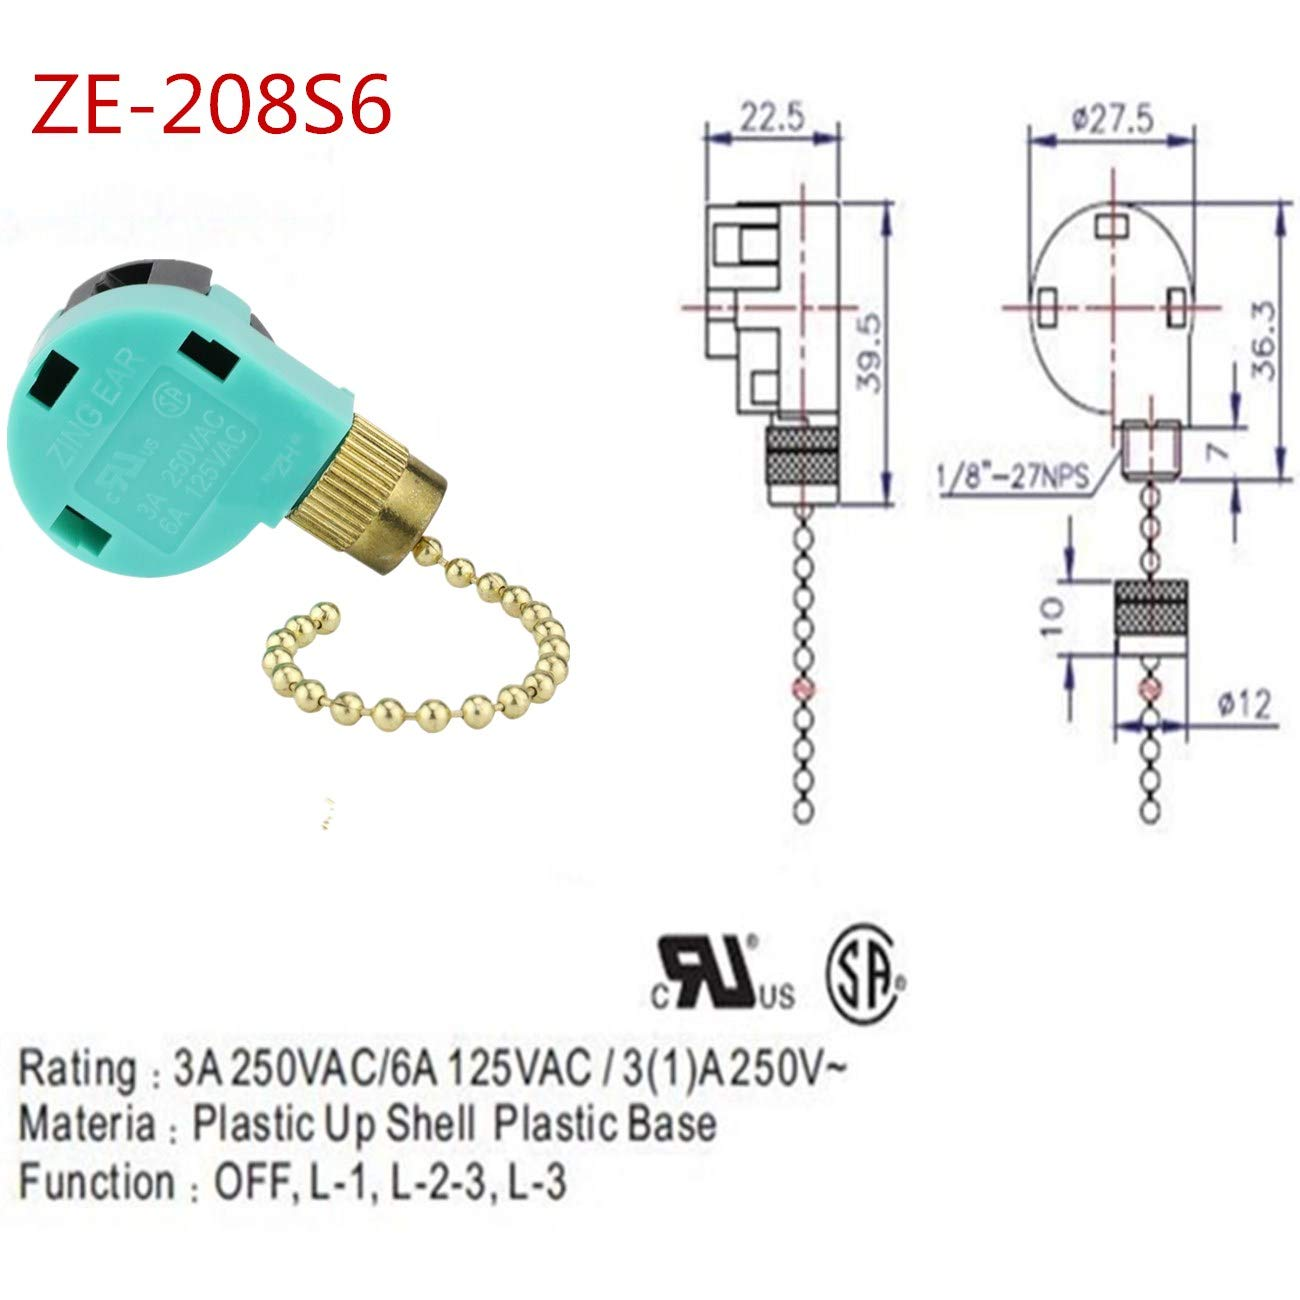 Zing Ear Fan Switch Wiring Diagram from images-na.ssl-images-amazon.com